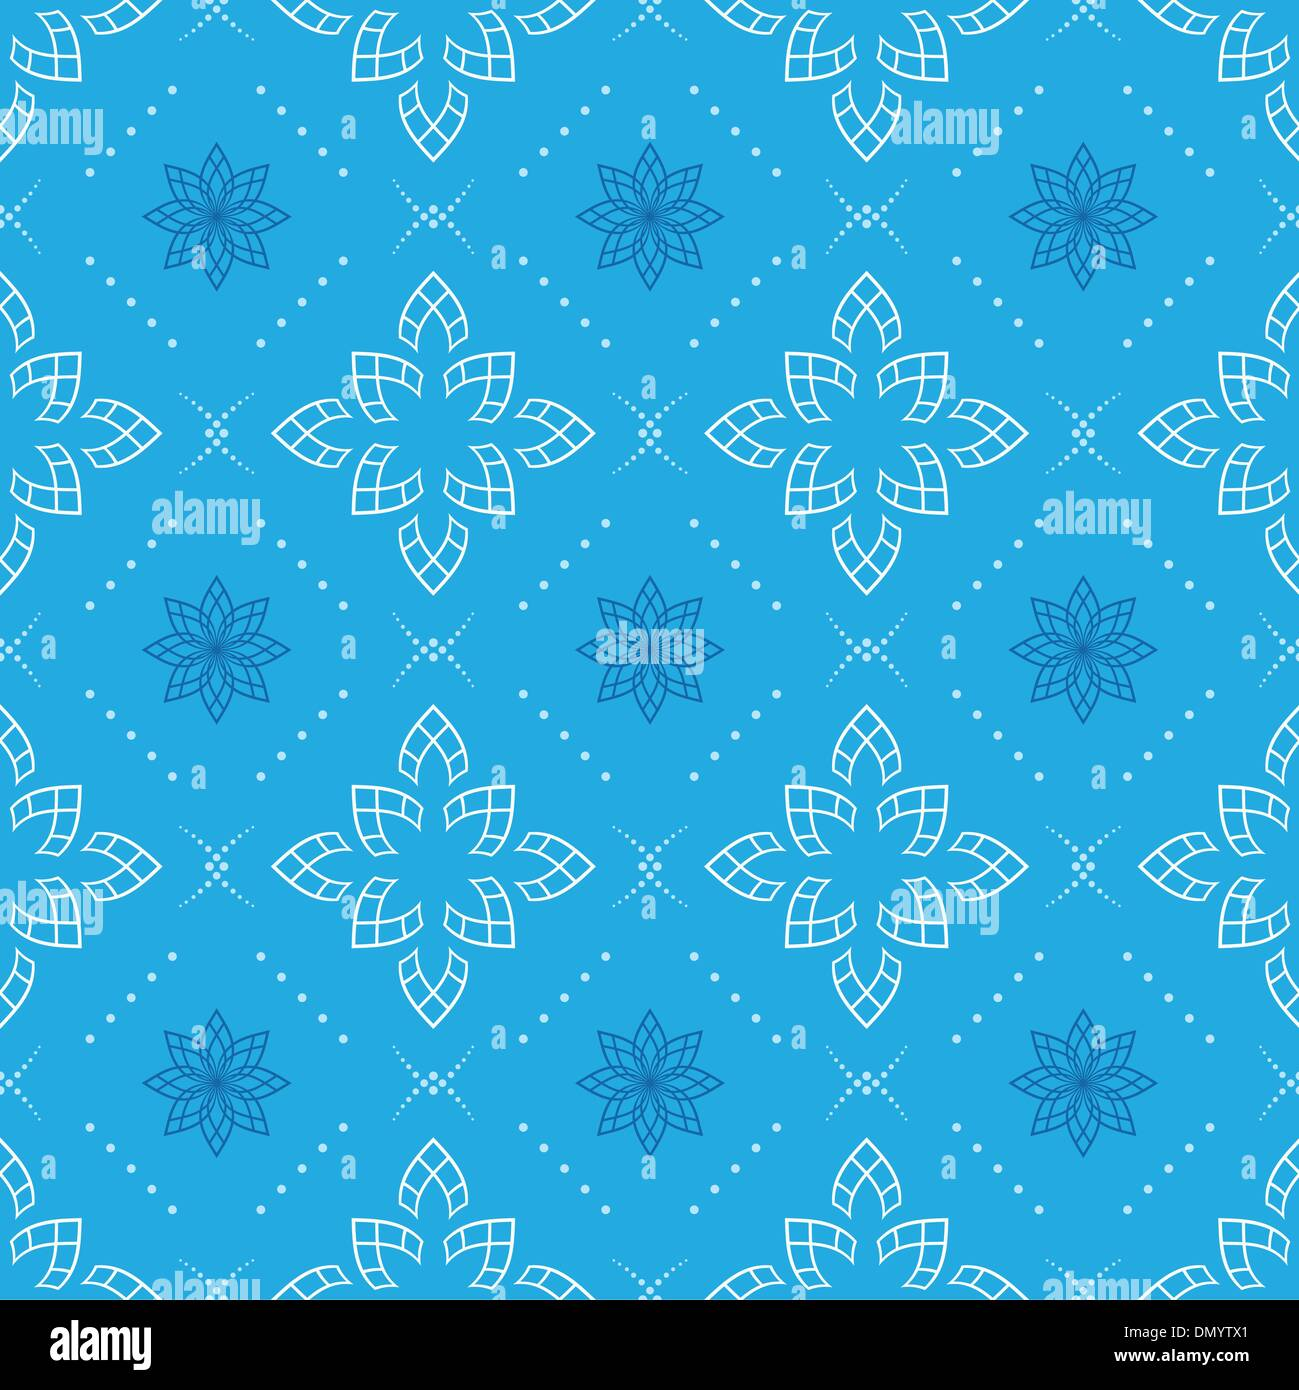 vector blue seamless geometrical pattern - Stock Image